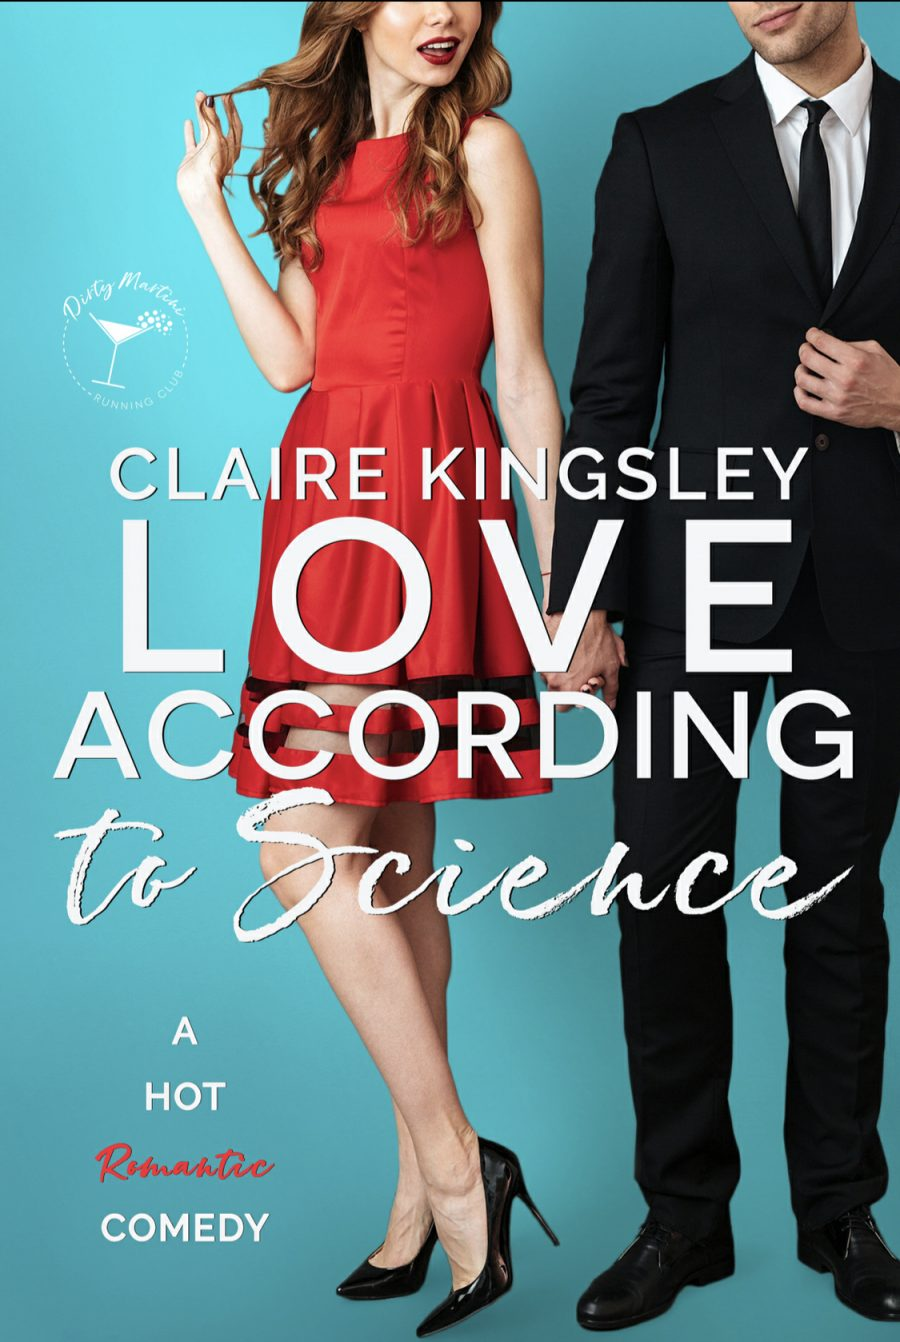 Love According to Science by Claire Kingsley - A Book Review #BookReview #RomCom #Romance #Contemporary #4Stars #HEA #KindleUnlimited #KU